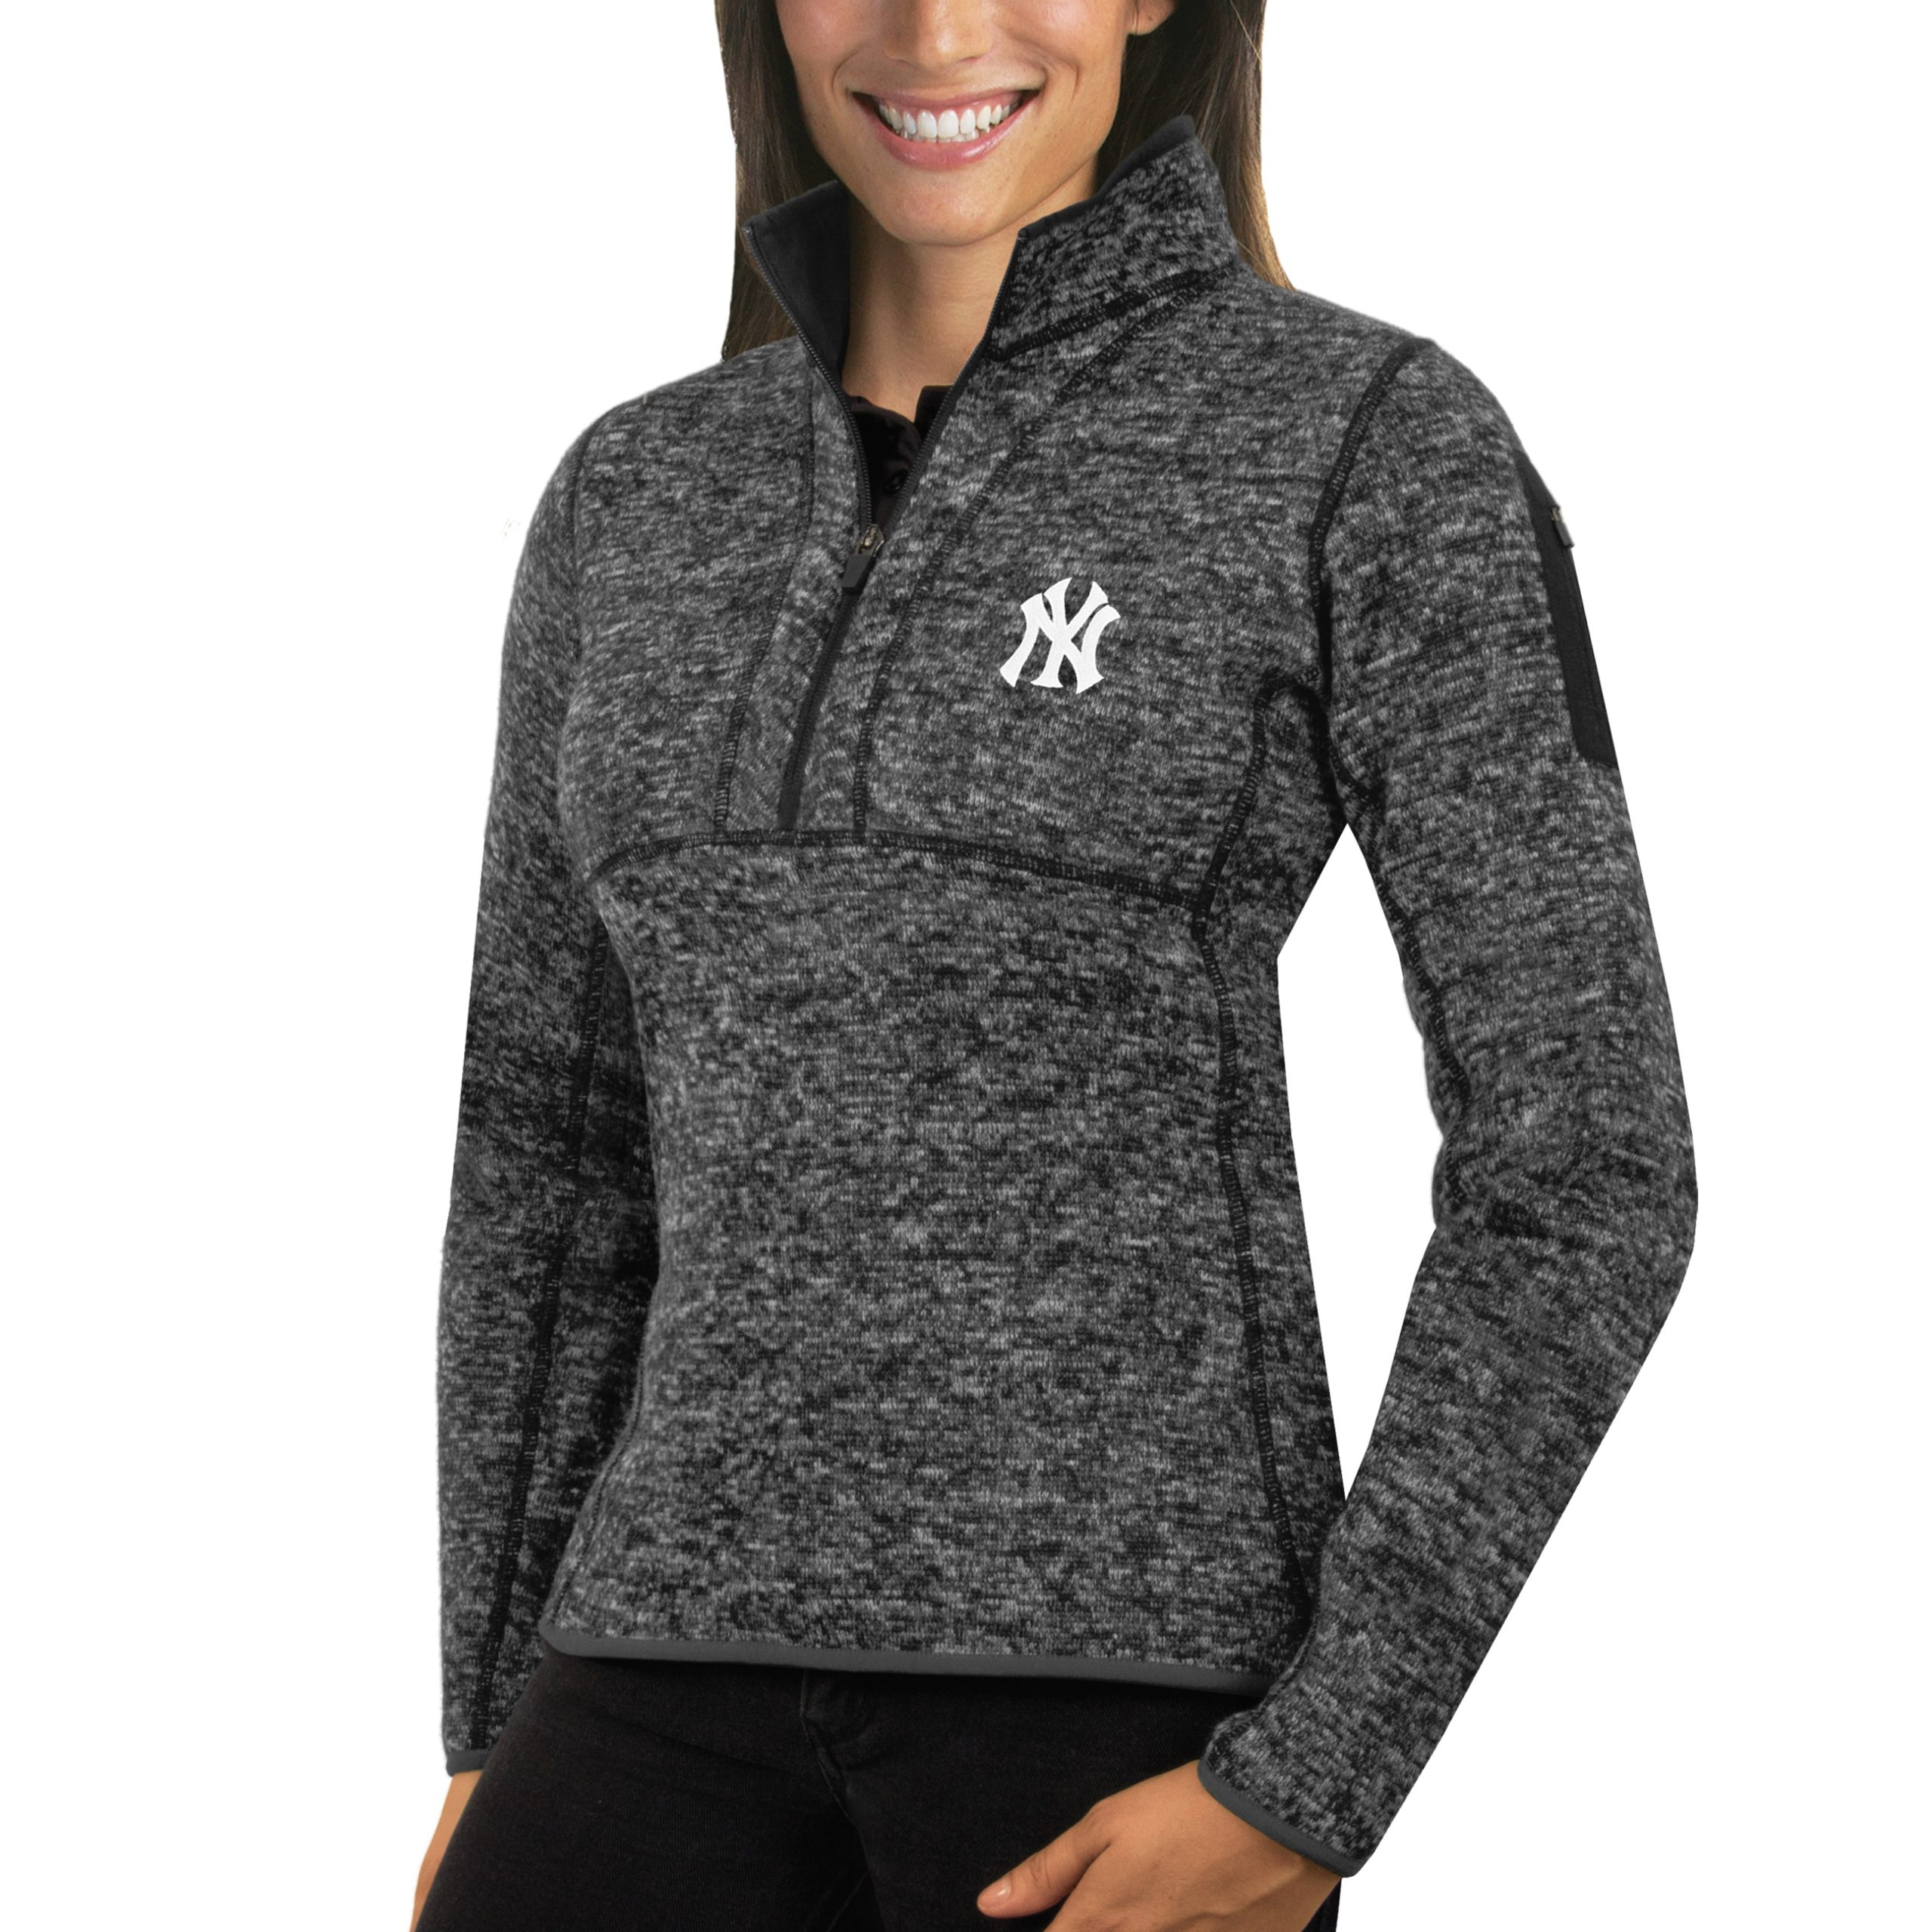 New York Yankees Antigua Women's Fortune Half-Zip Pullover Sweater - Heathered Charcoal